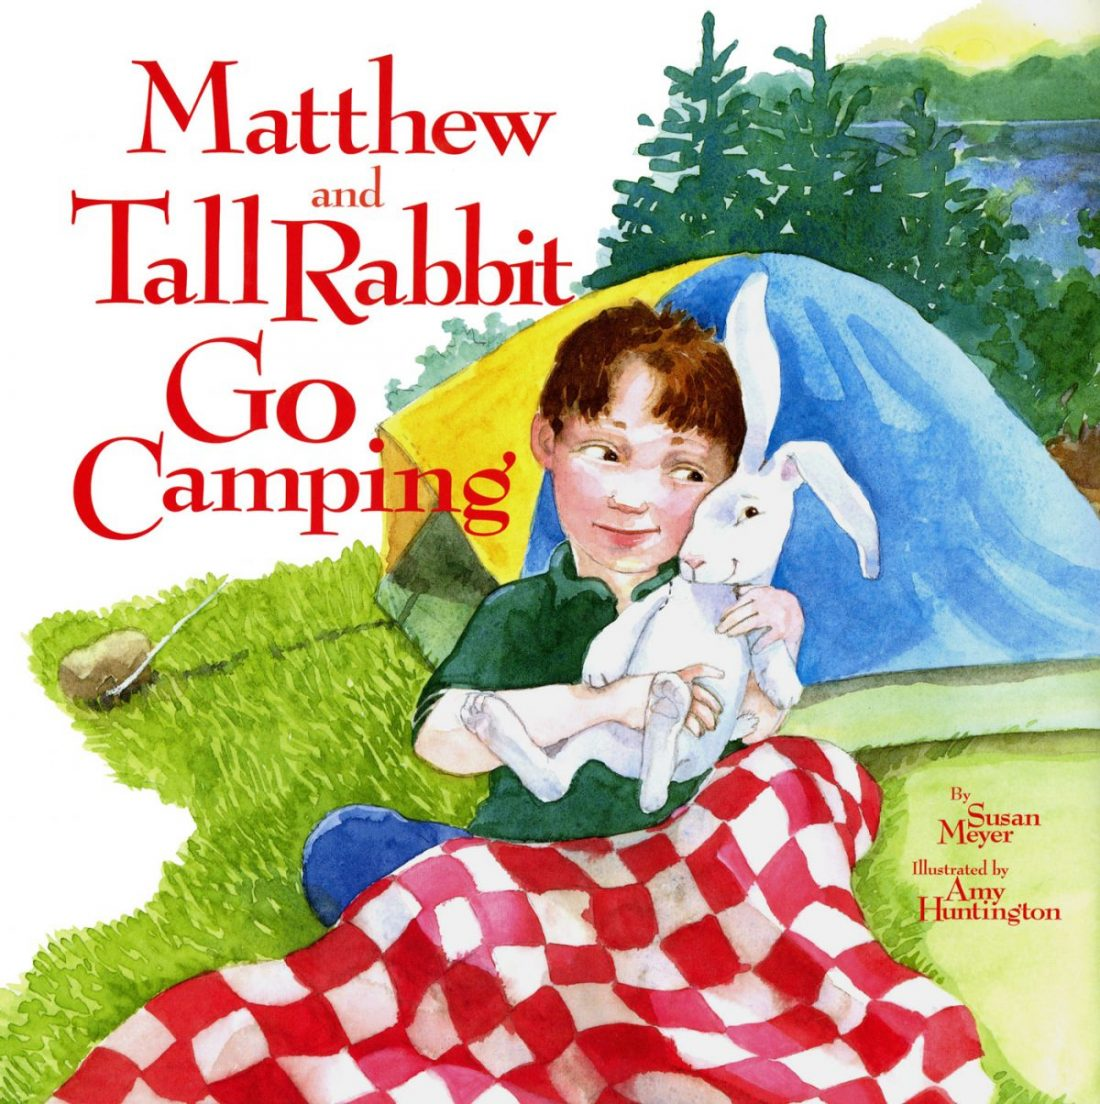 Picture book, Matthew and Tall Rabbit Go Camping, illustrated by amy Huntington. Words by Susan Meyer.